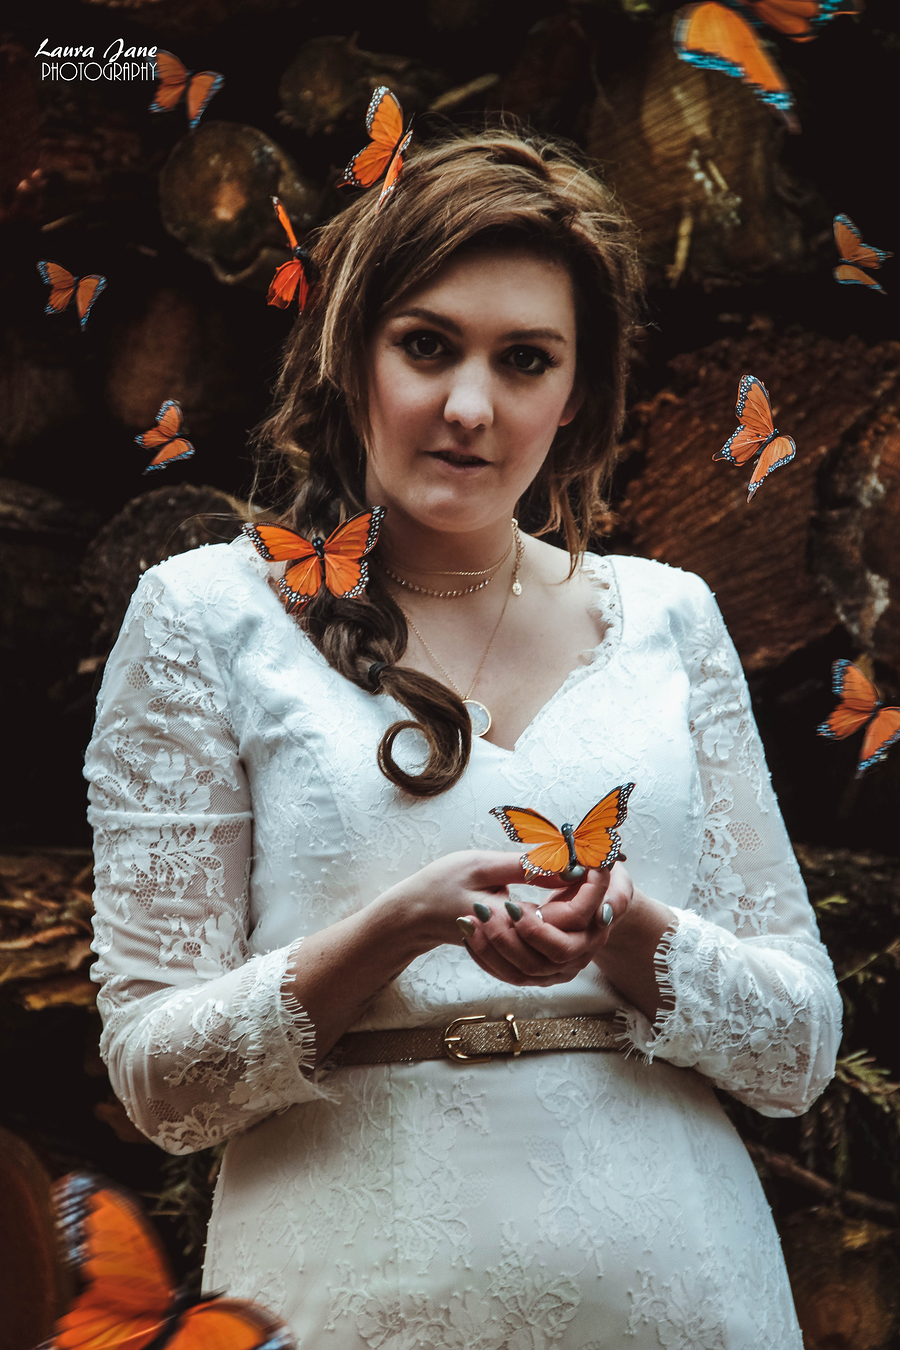 Butterfly kisses :) / Photography by Lauraj87, Model littlerayofsunshine, Post processing by Lauraj87, Assisted by Leon W / Uploaded 14th January 2018 @ 11:40 PM